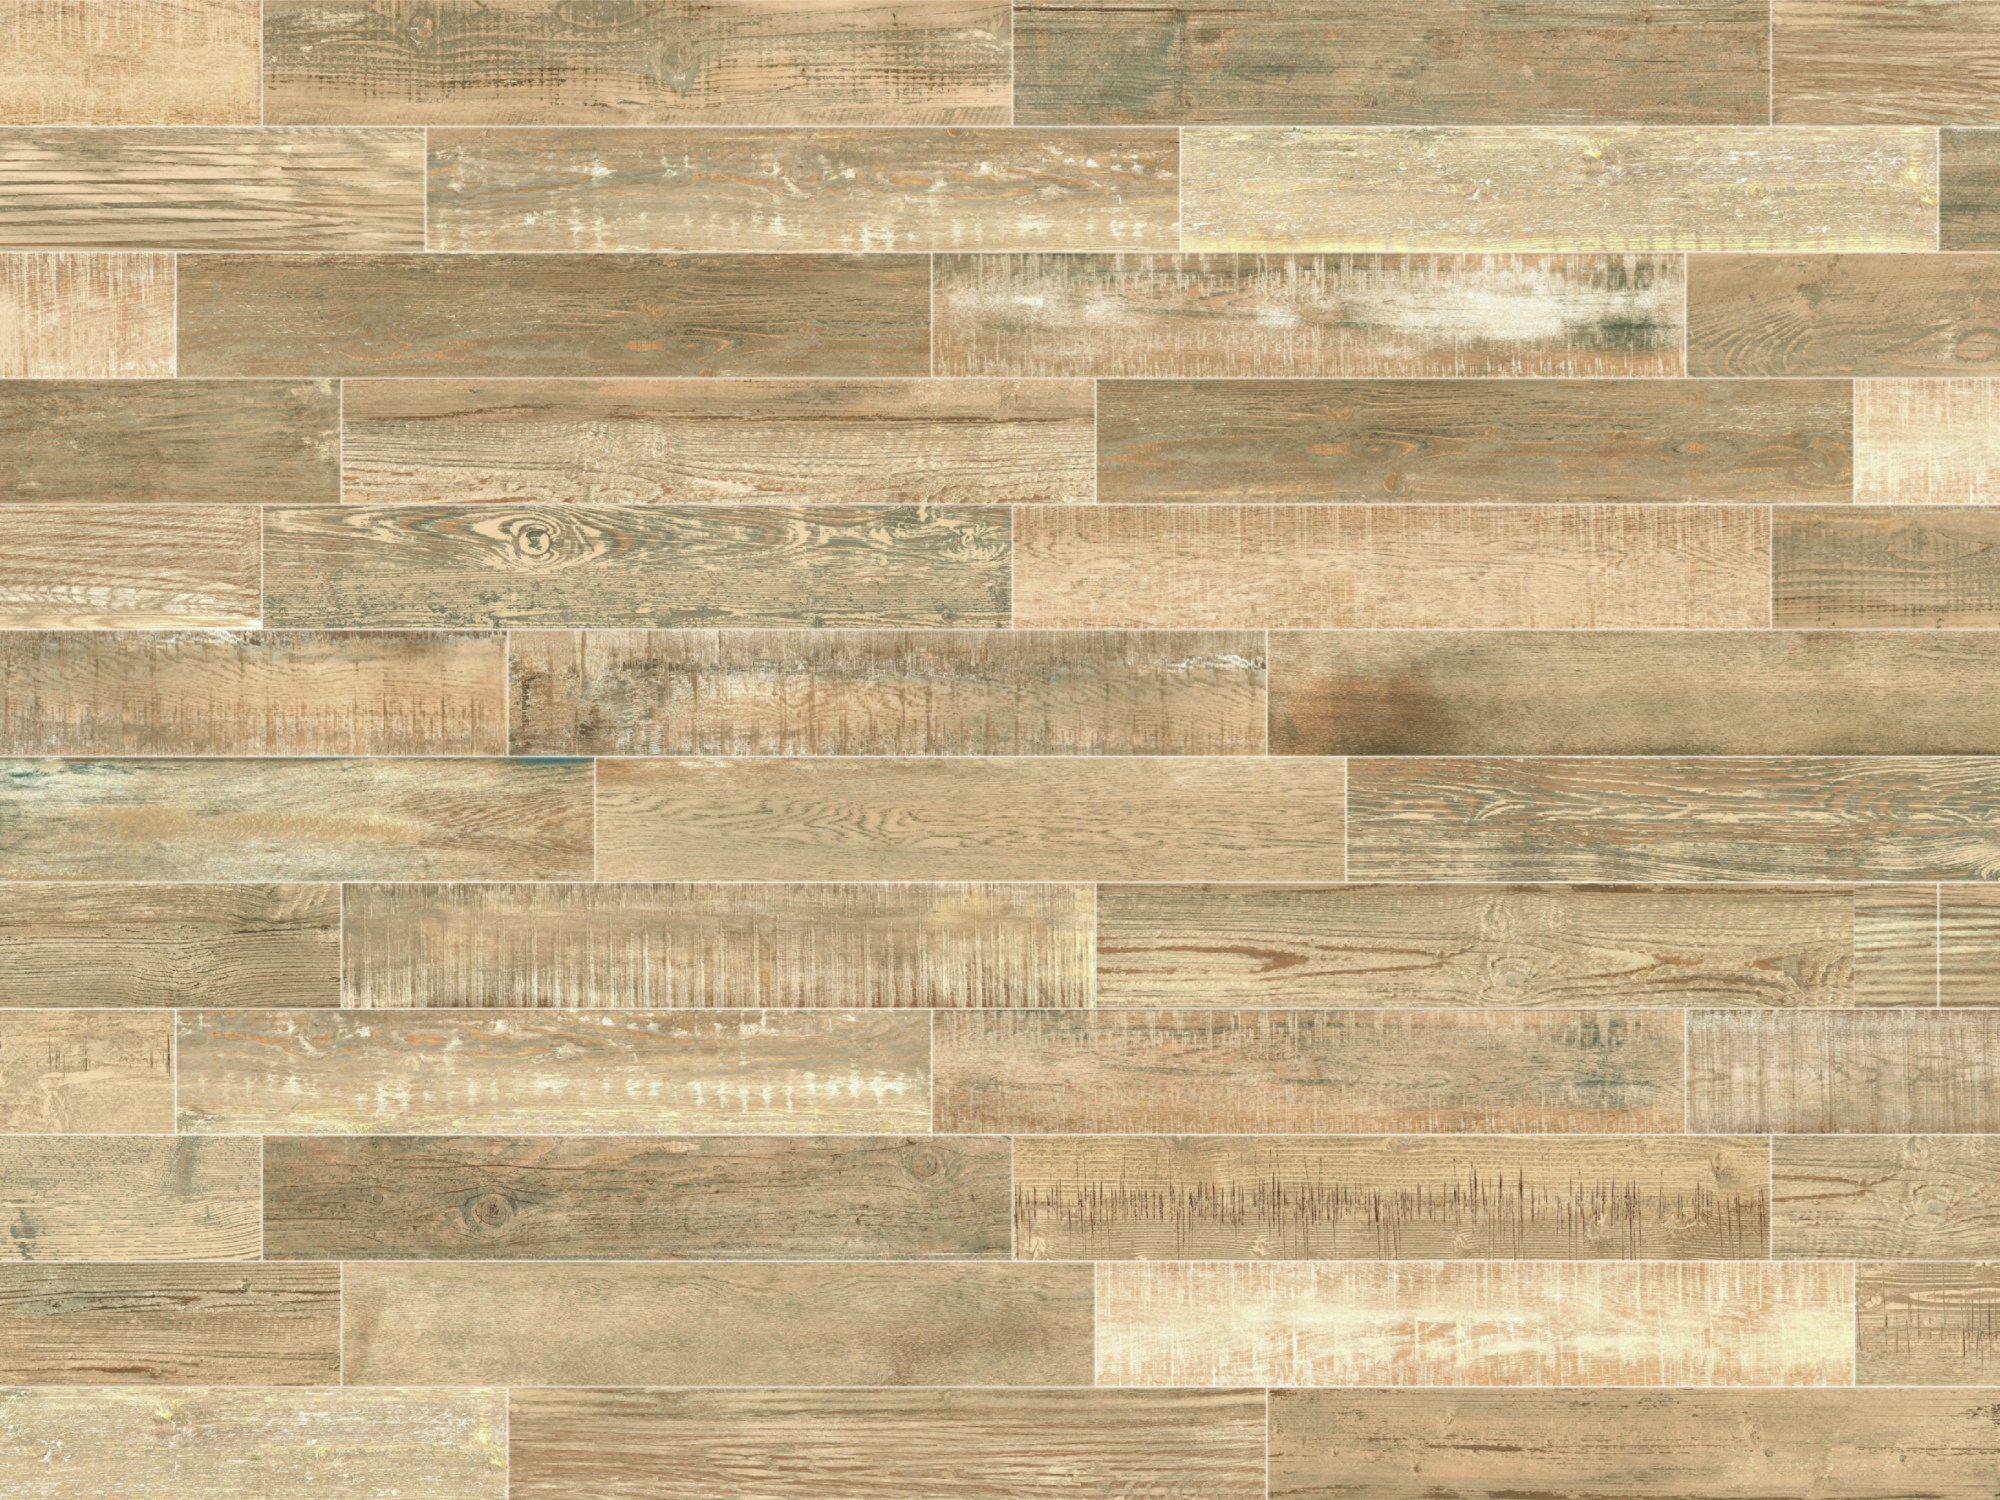 Full body porcelain stoneware wallfloor tiles with wood effect full body porcelain stoneware wallfloor tiles with wood effect scrapwood air by italgraniti dailygadgetfo Image collections